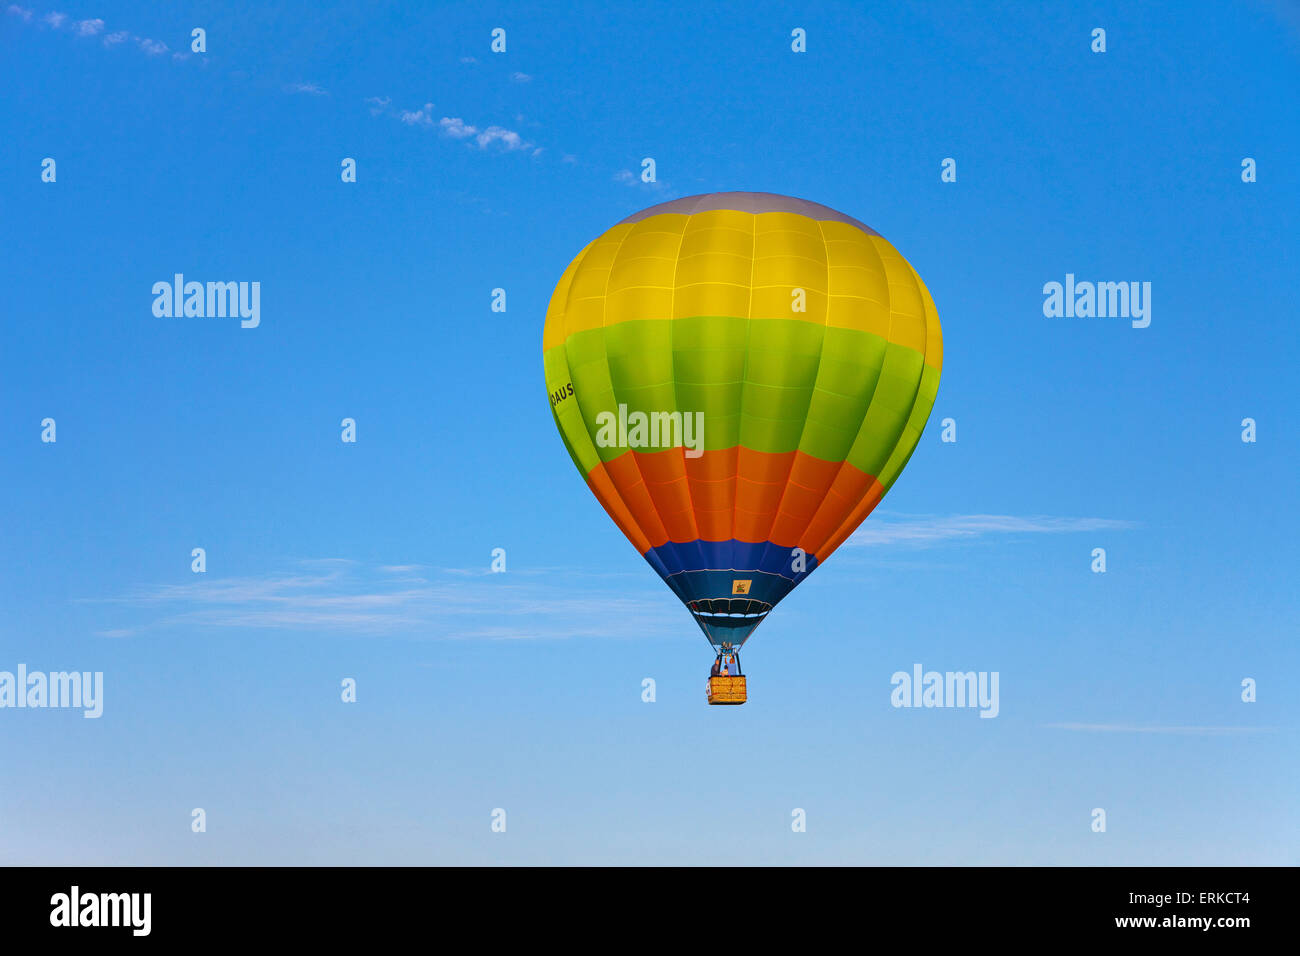 Ballon Bilder Heißluftballon Stockfotos And Heißluftballon Bilder Alamy